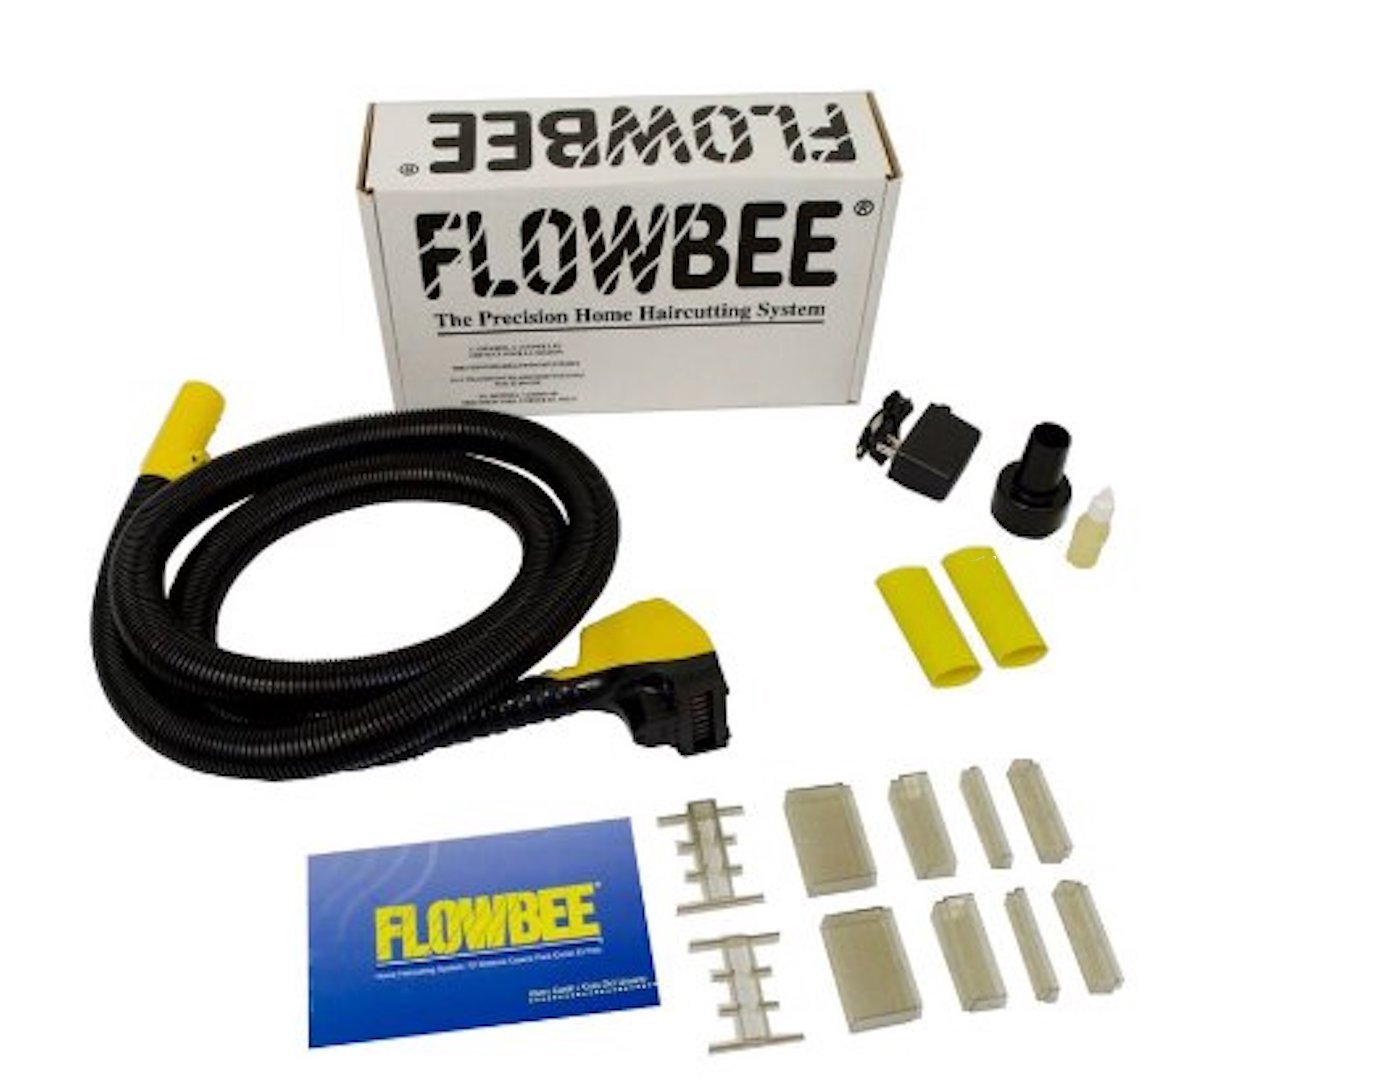 Flowbee Haircutting System with One Extra Vacuum Adapter (Flowbee+Rubber Vaccum Adapter)